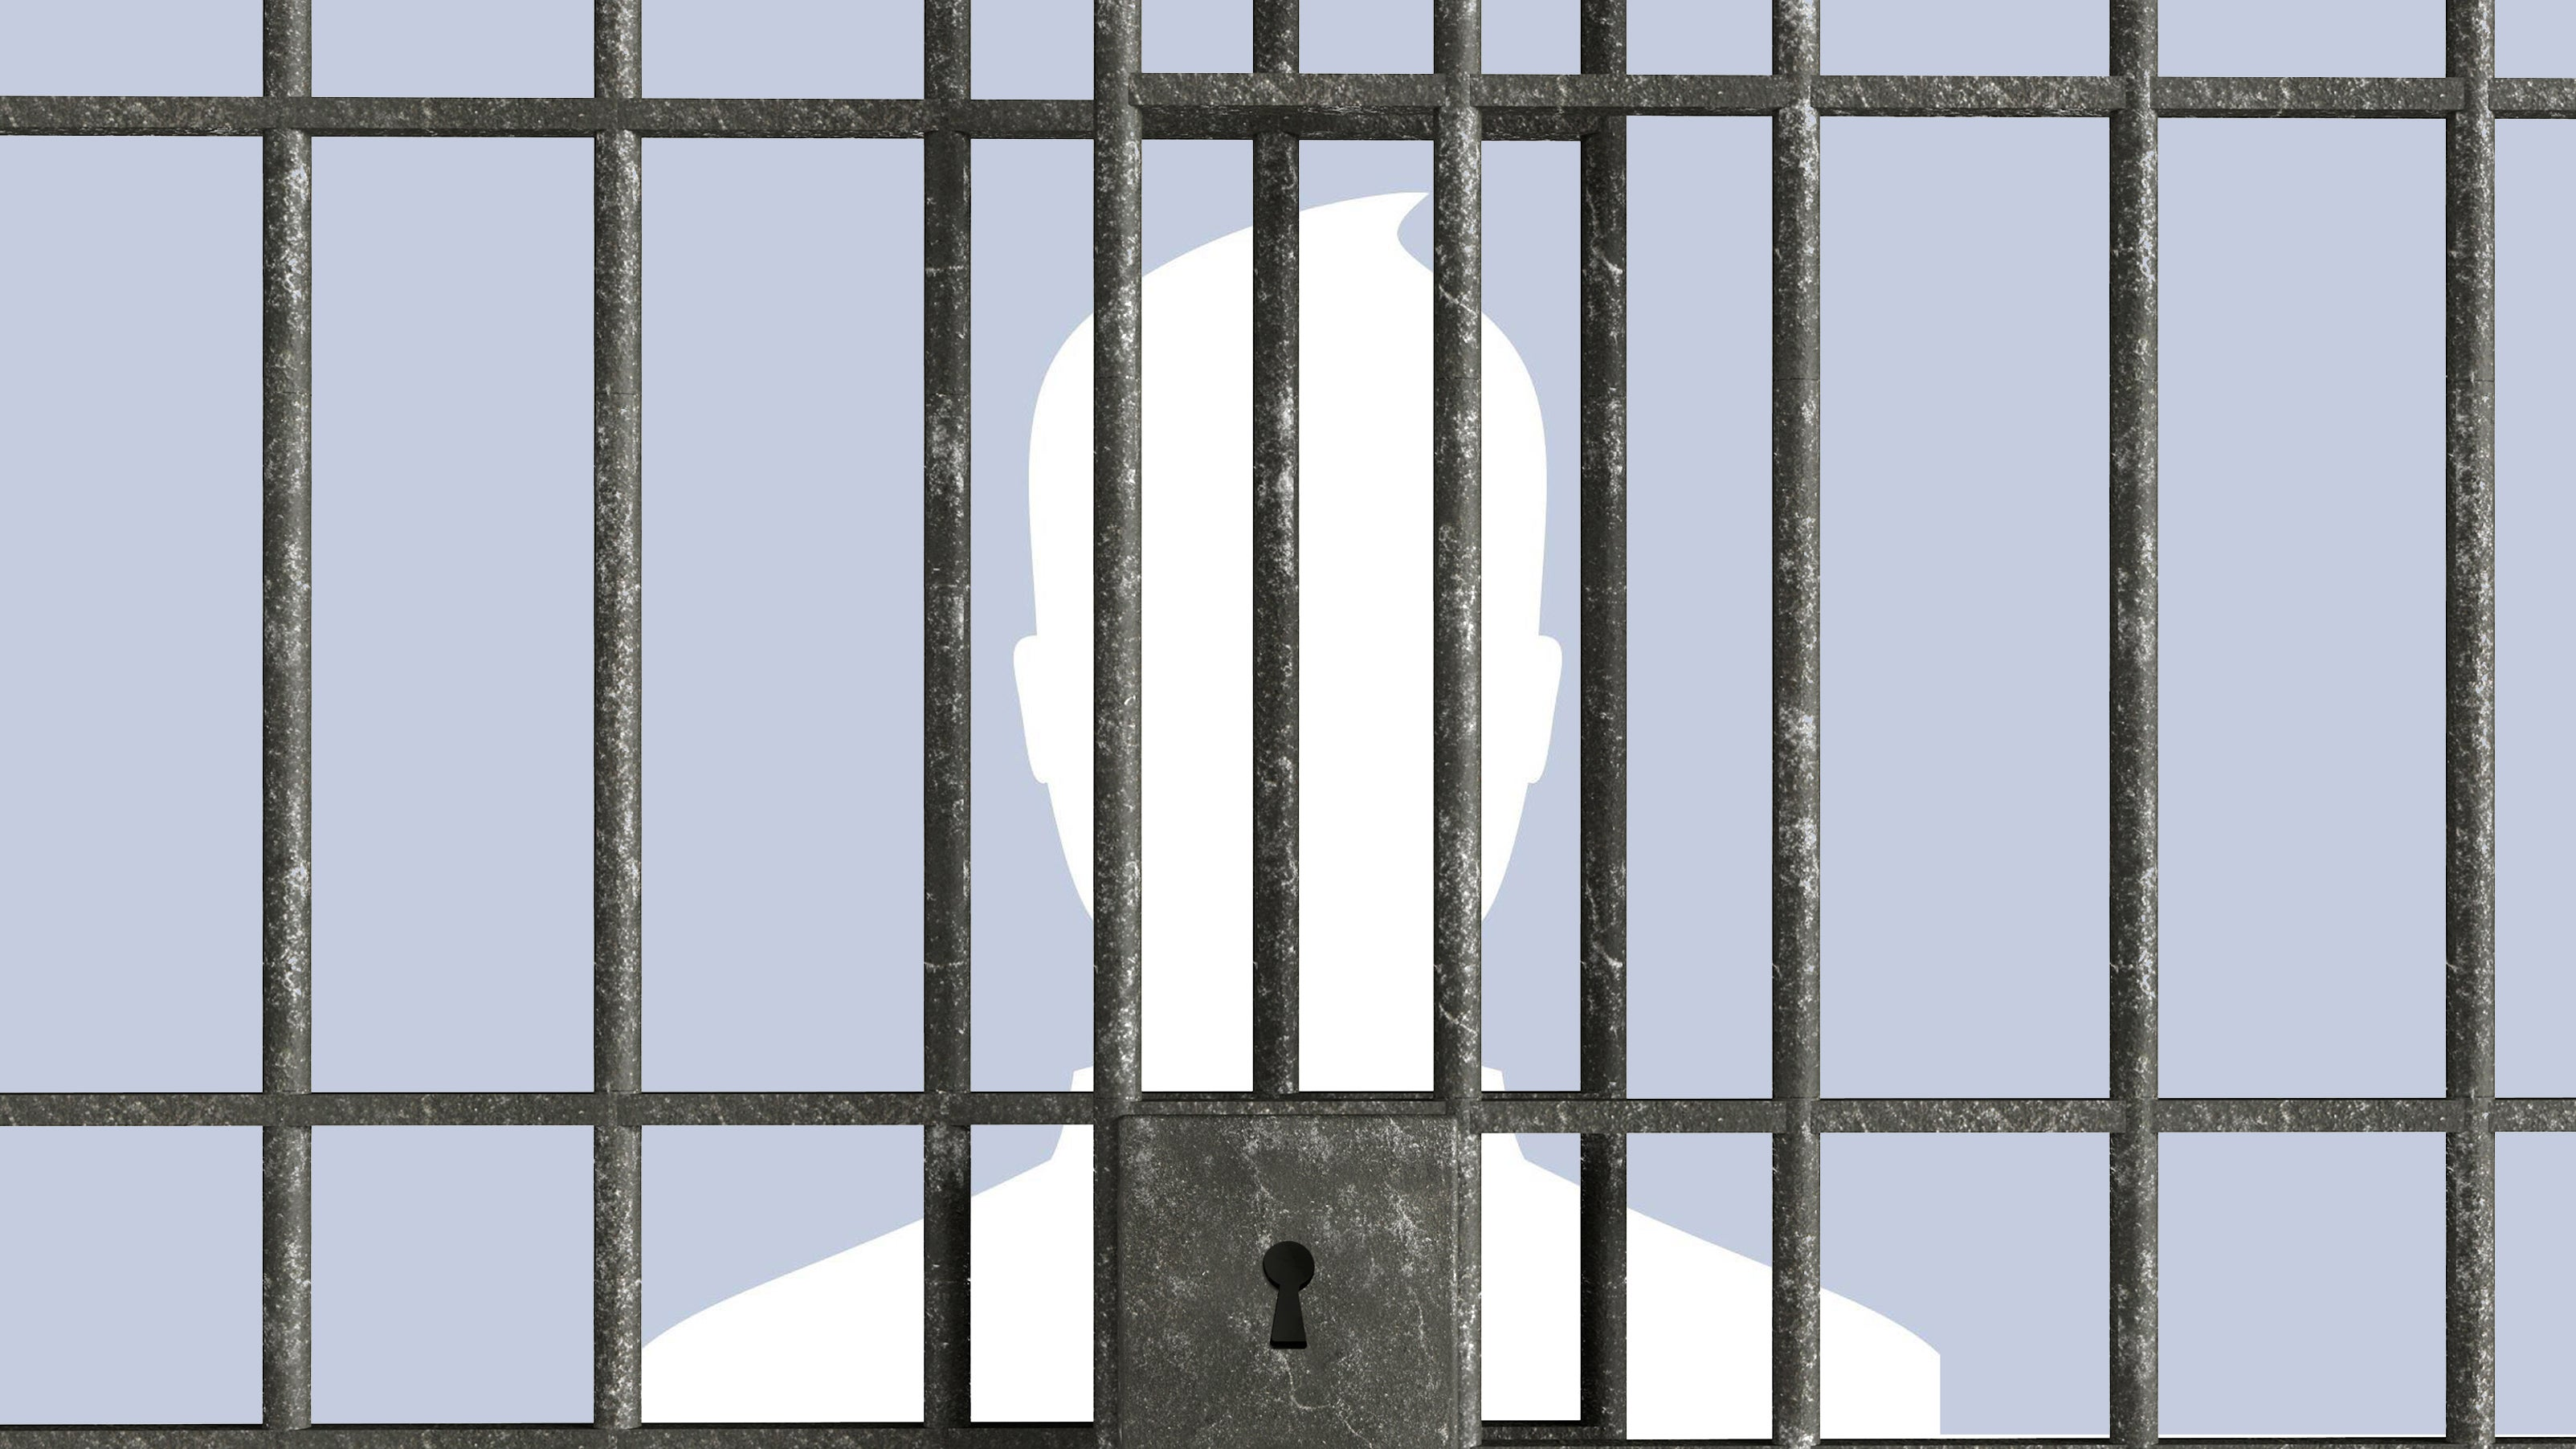 Hundreds of Inmates Are Sent To Solitary Confinement For Using Facebook